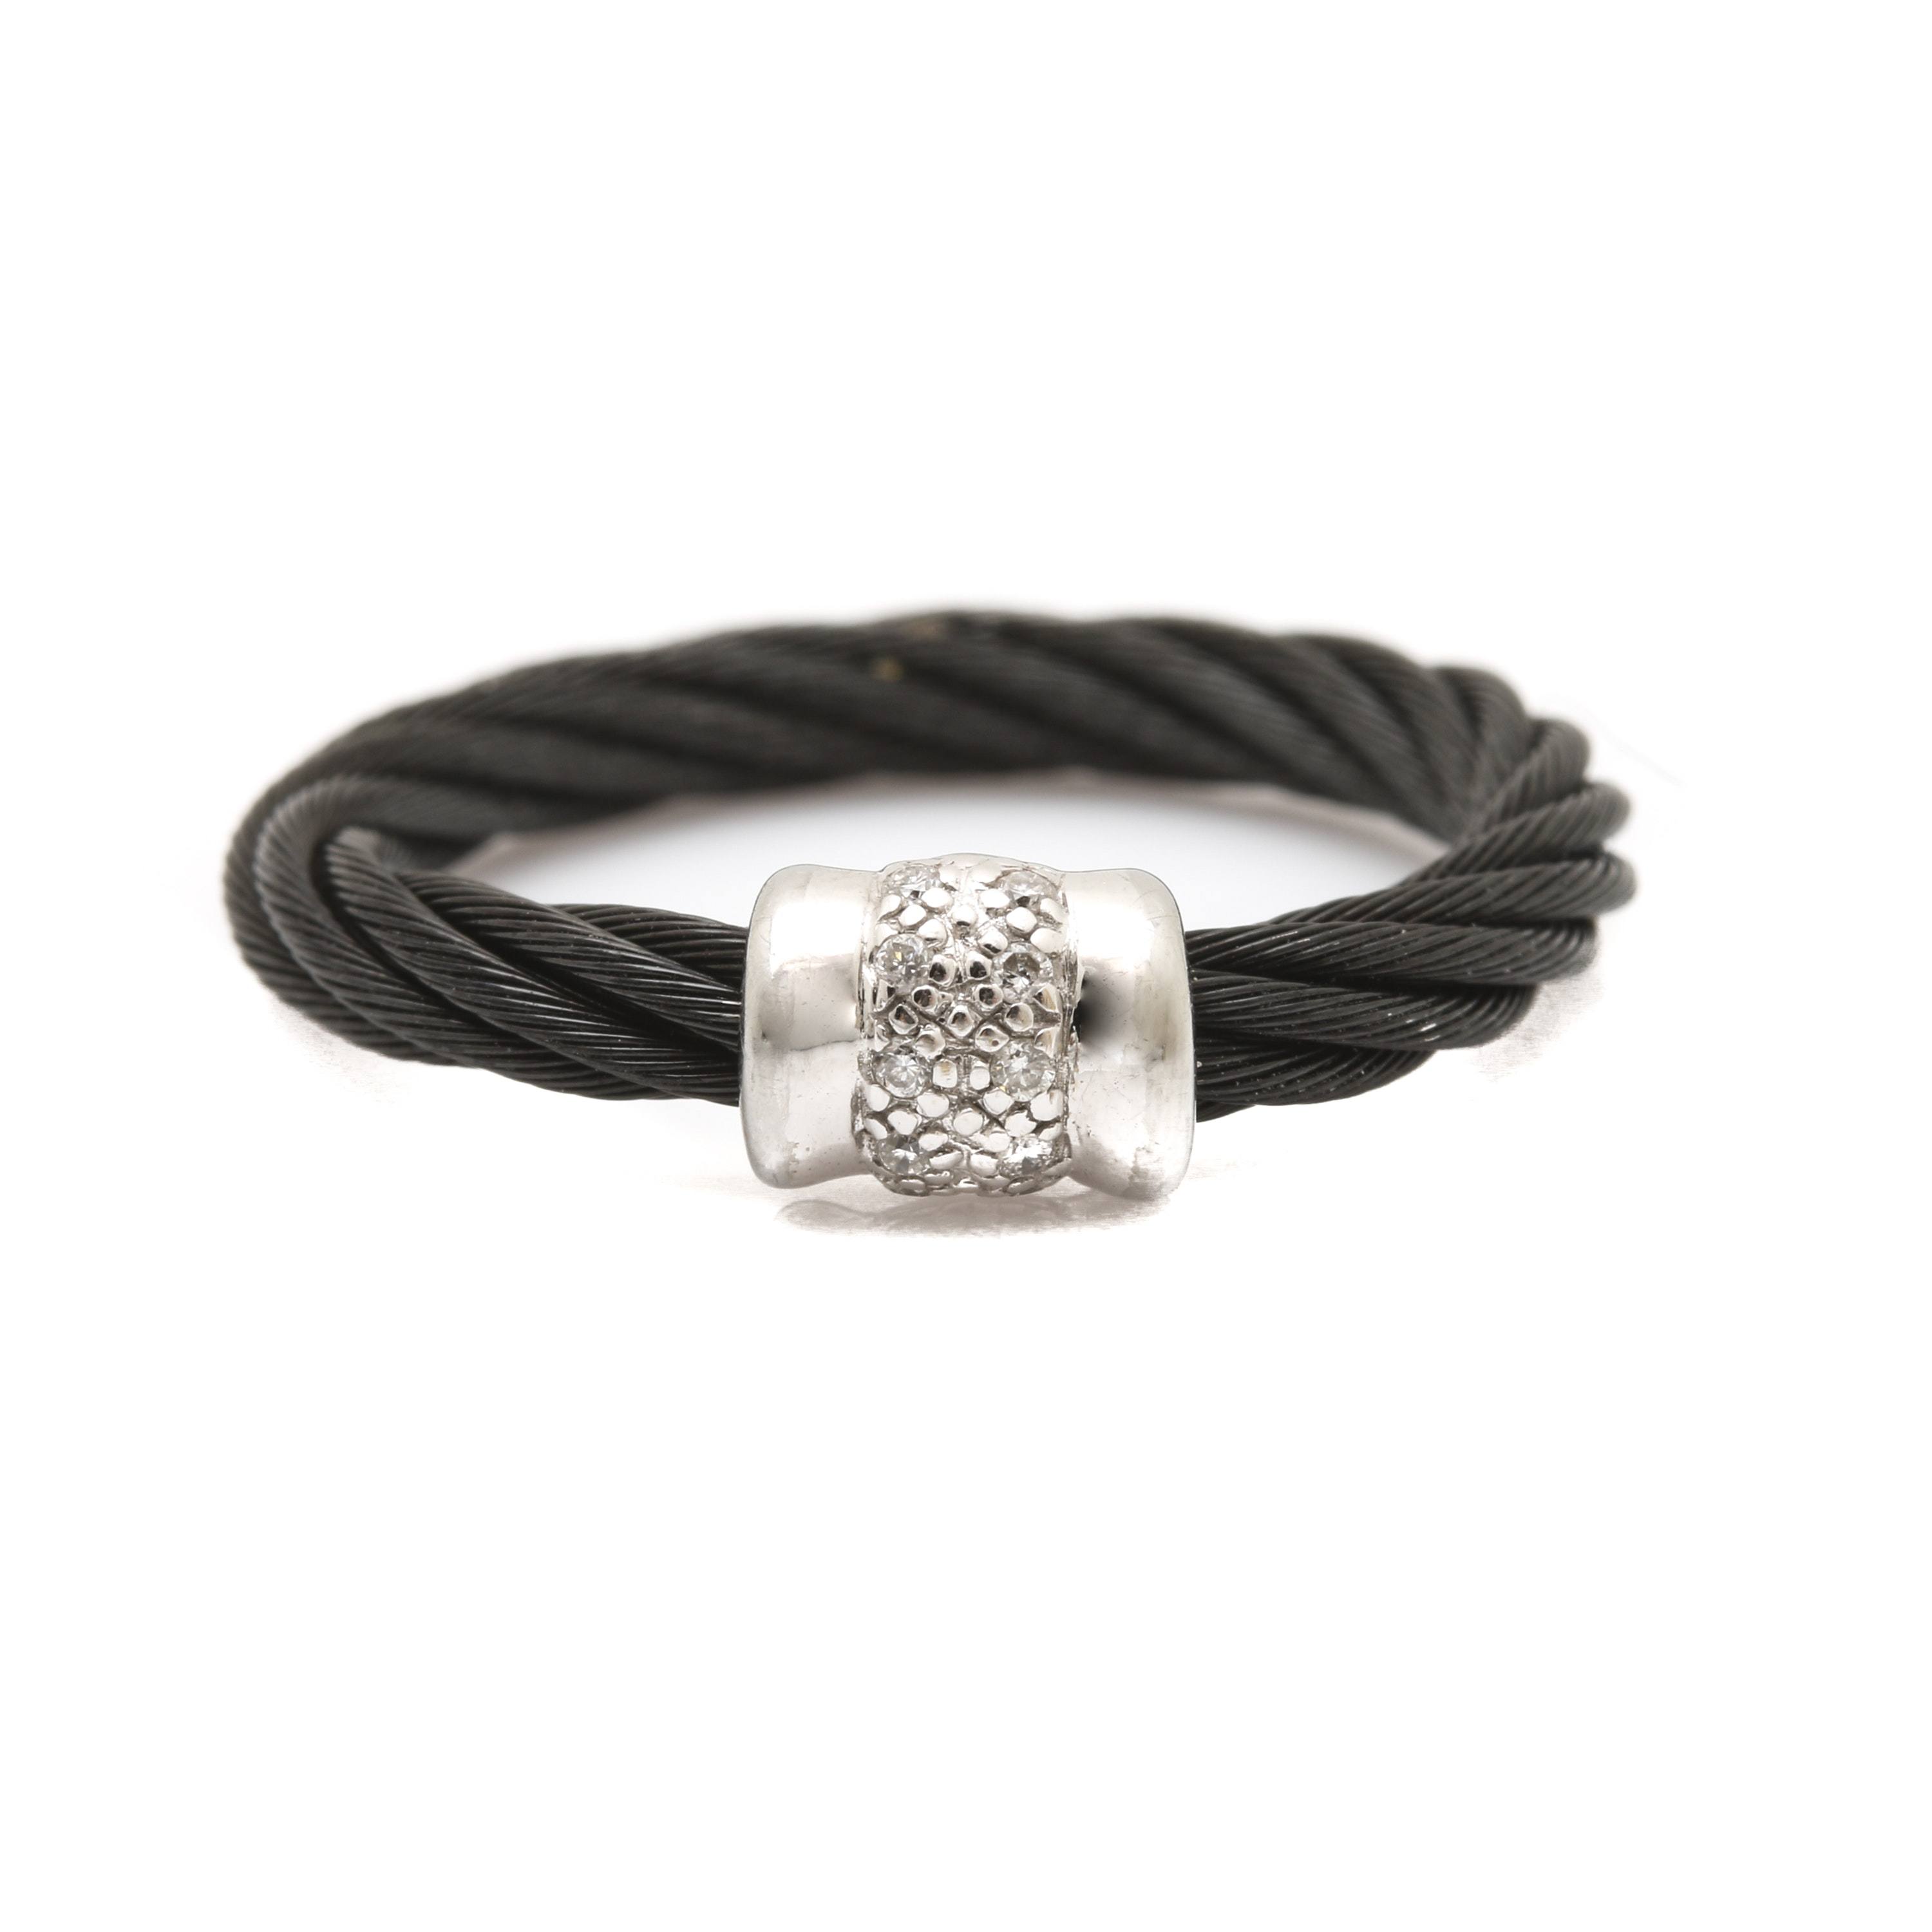 "Charriol ""Celtic Noir"" 18K White Gold and Steel Diamond Ring"